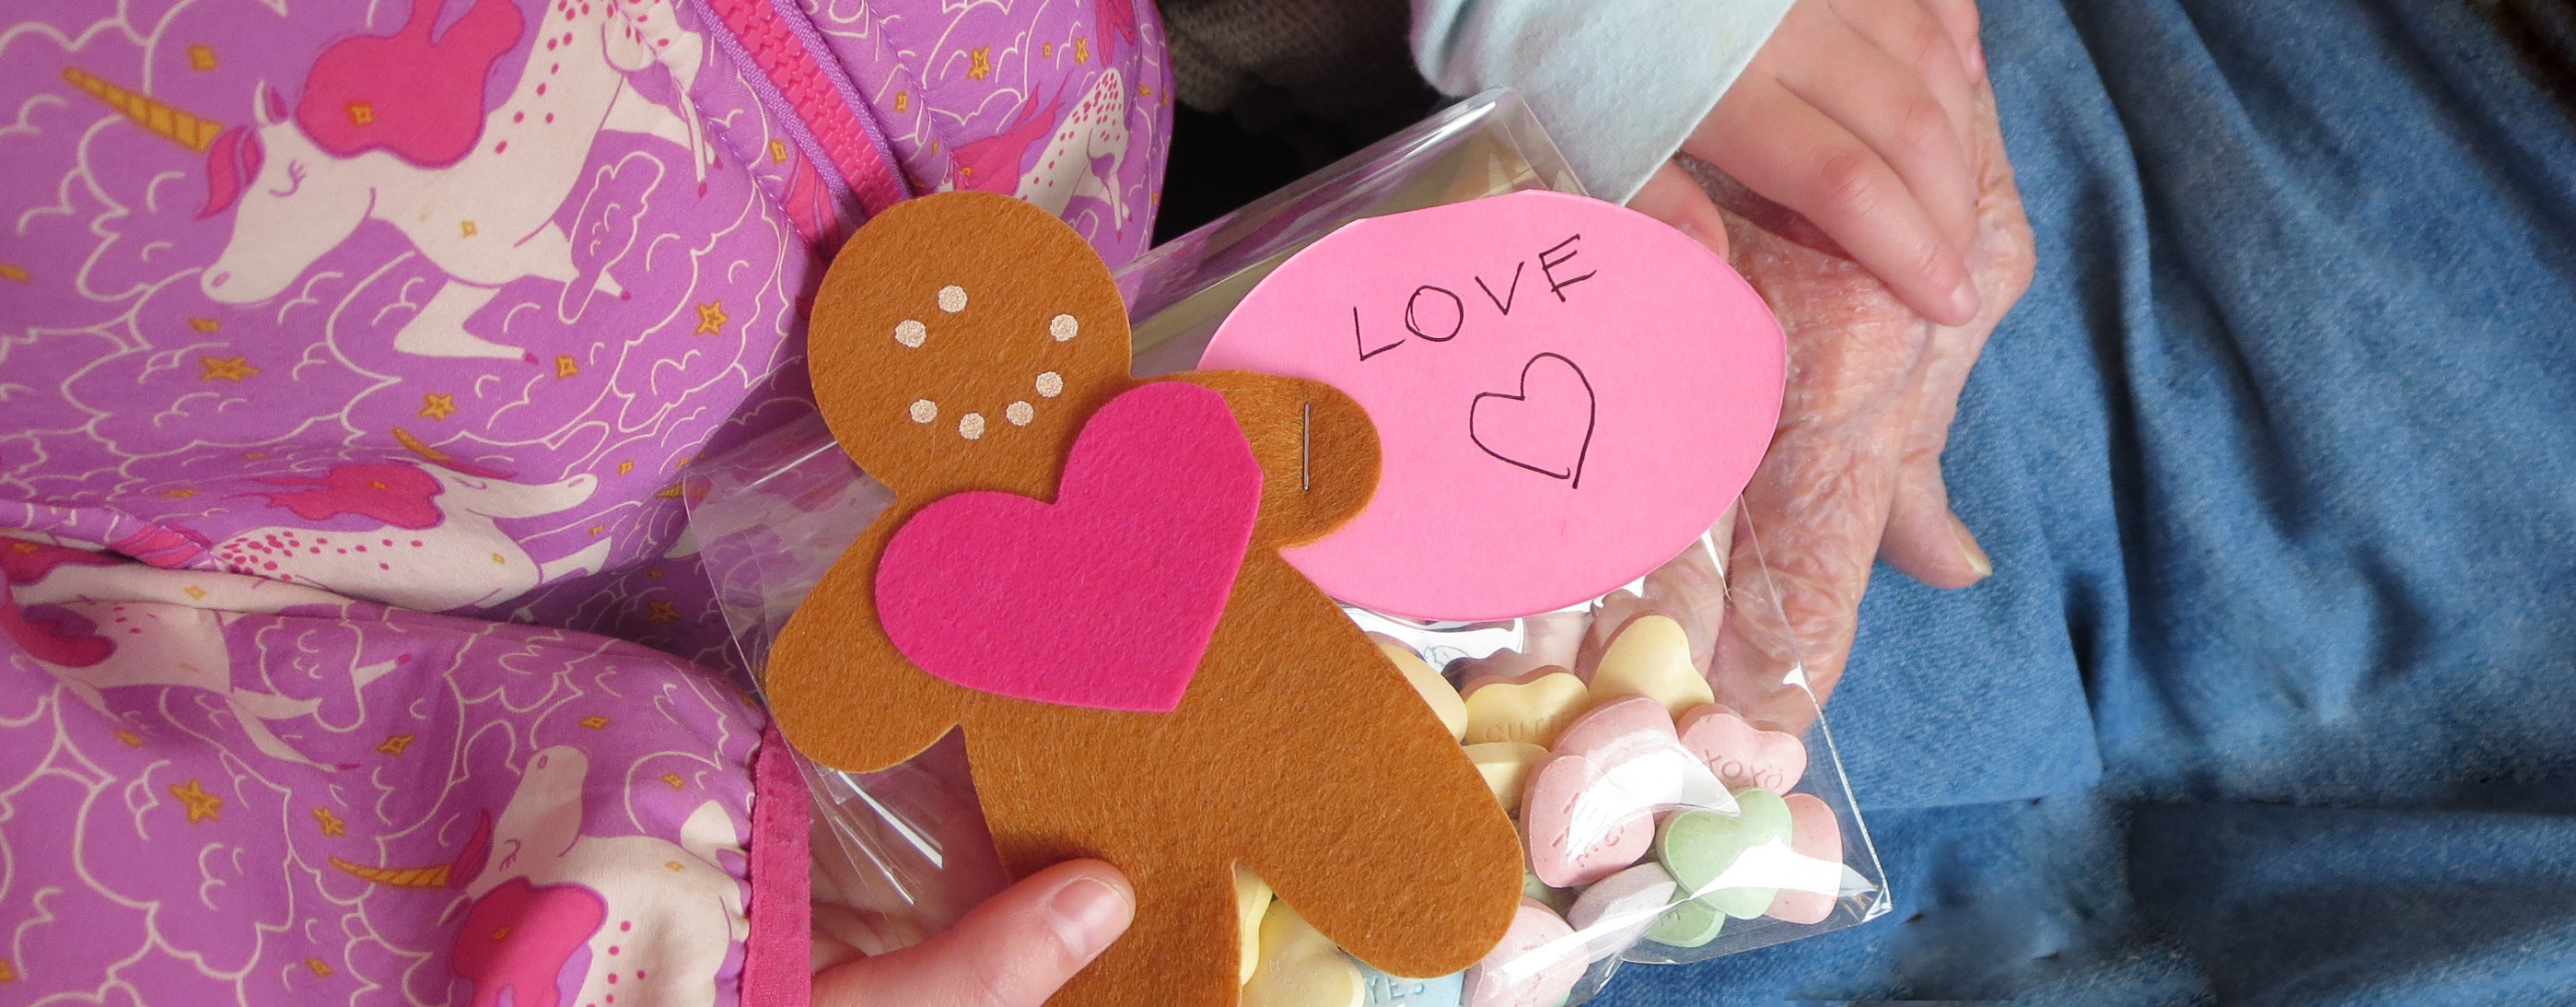 hands of a child giving bag of candy with felt gingerbread cookie shaped gift tag to hand of an older person